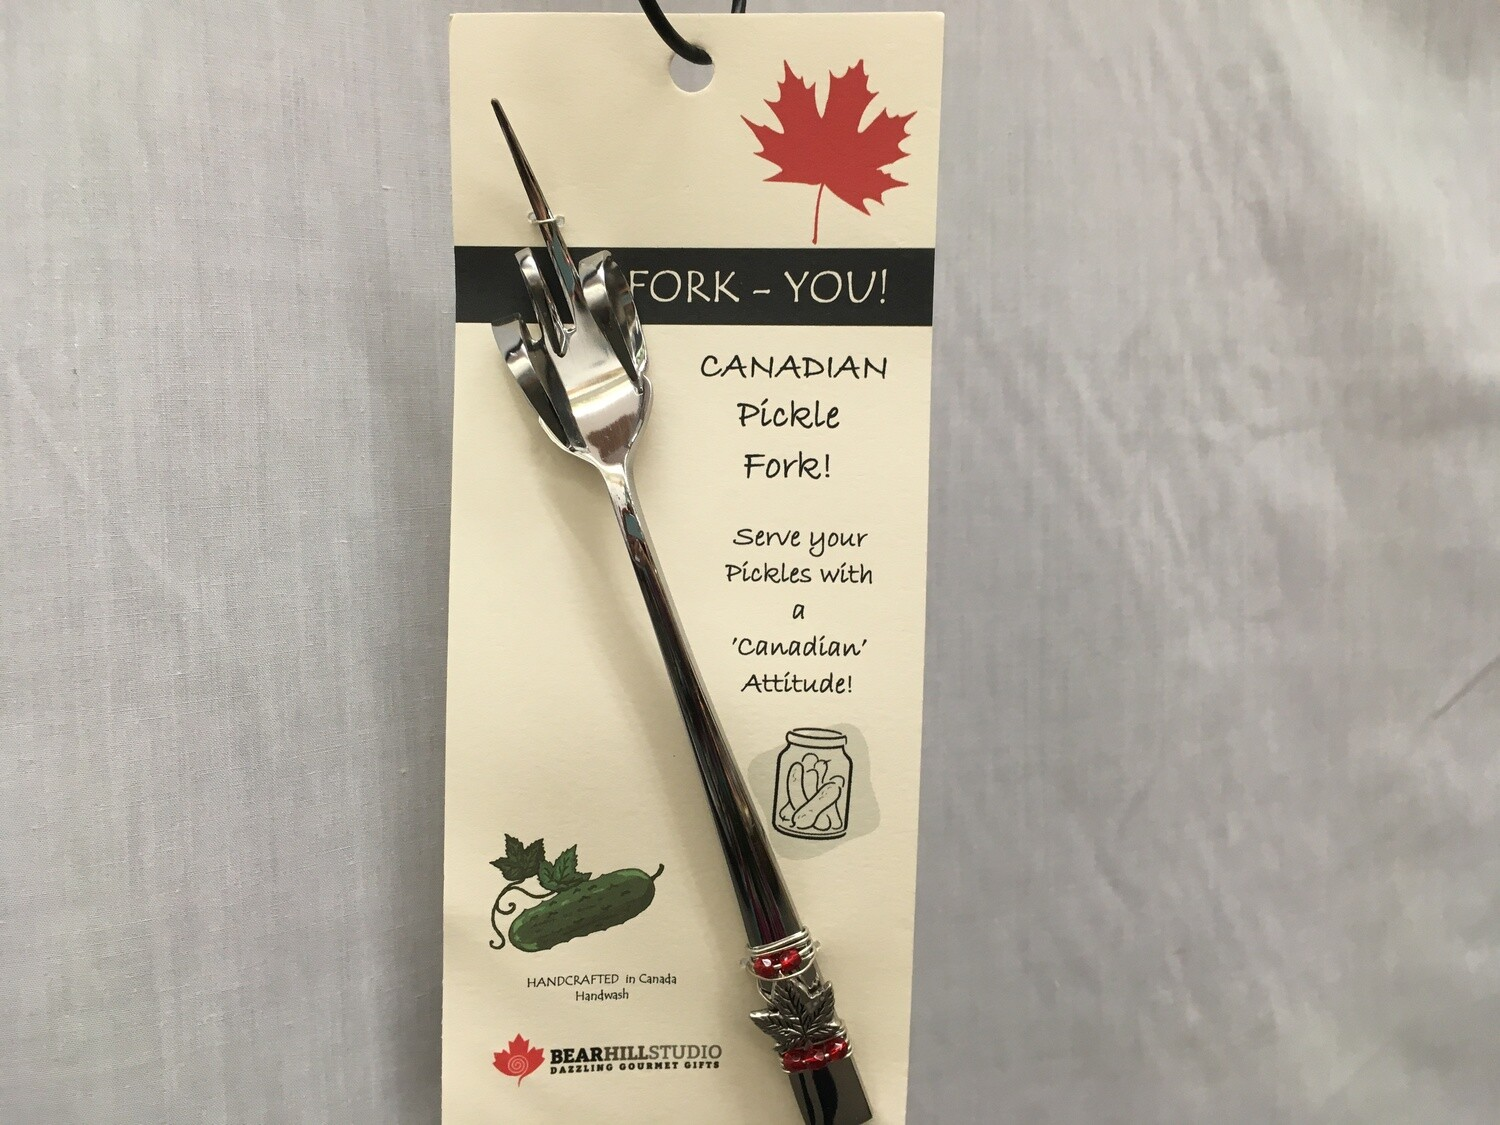 Fork-You Maple Leaf Pickle Fork - Canadian Handcrafted - Red Beads